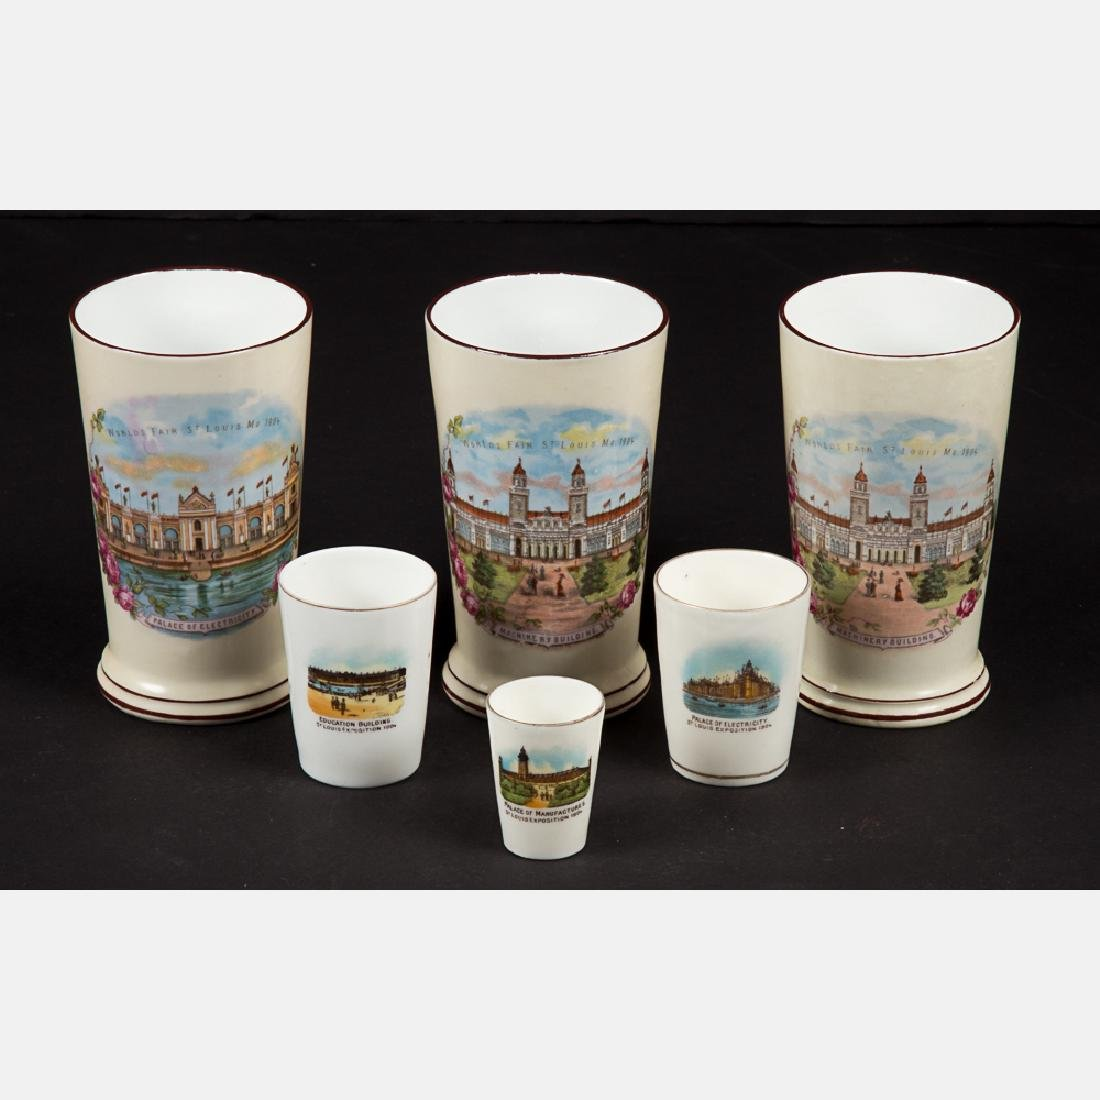 A Group of Six Porcelain Souvenir Cups by Various